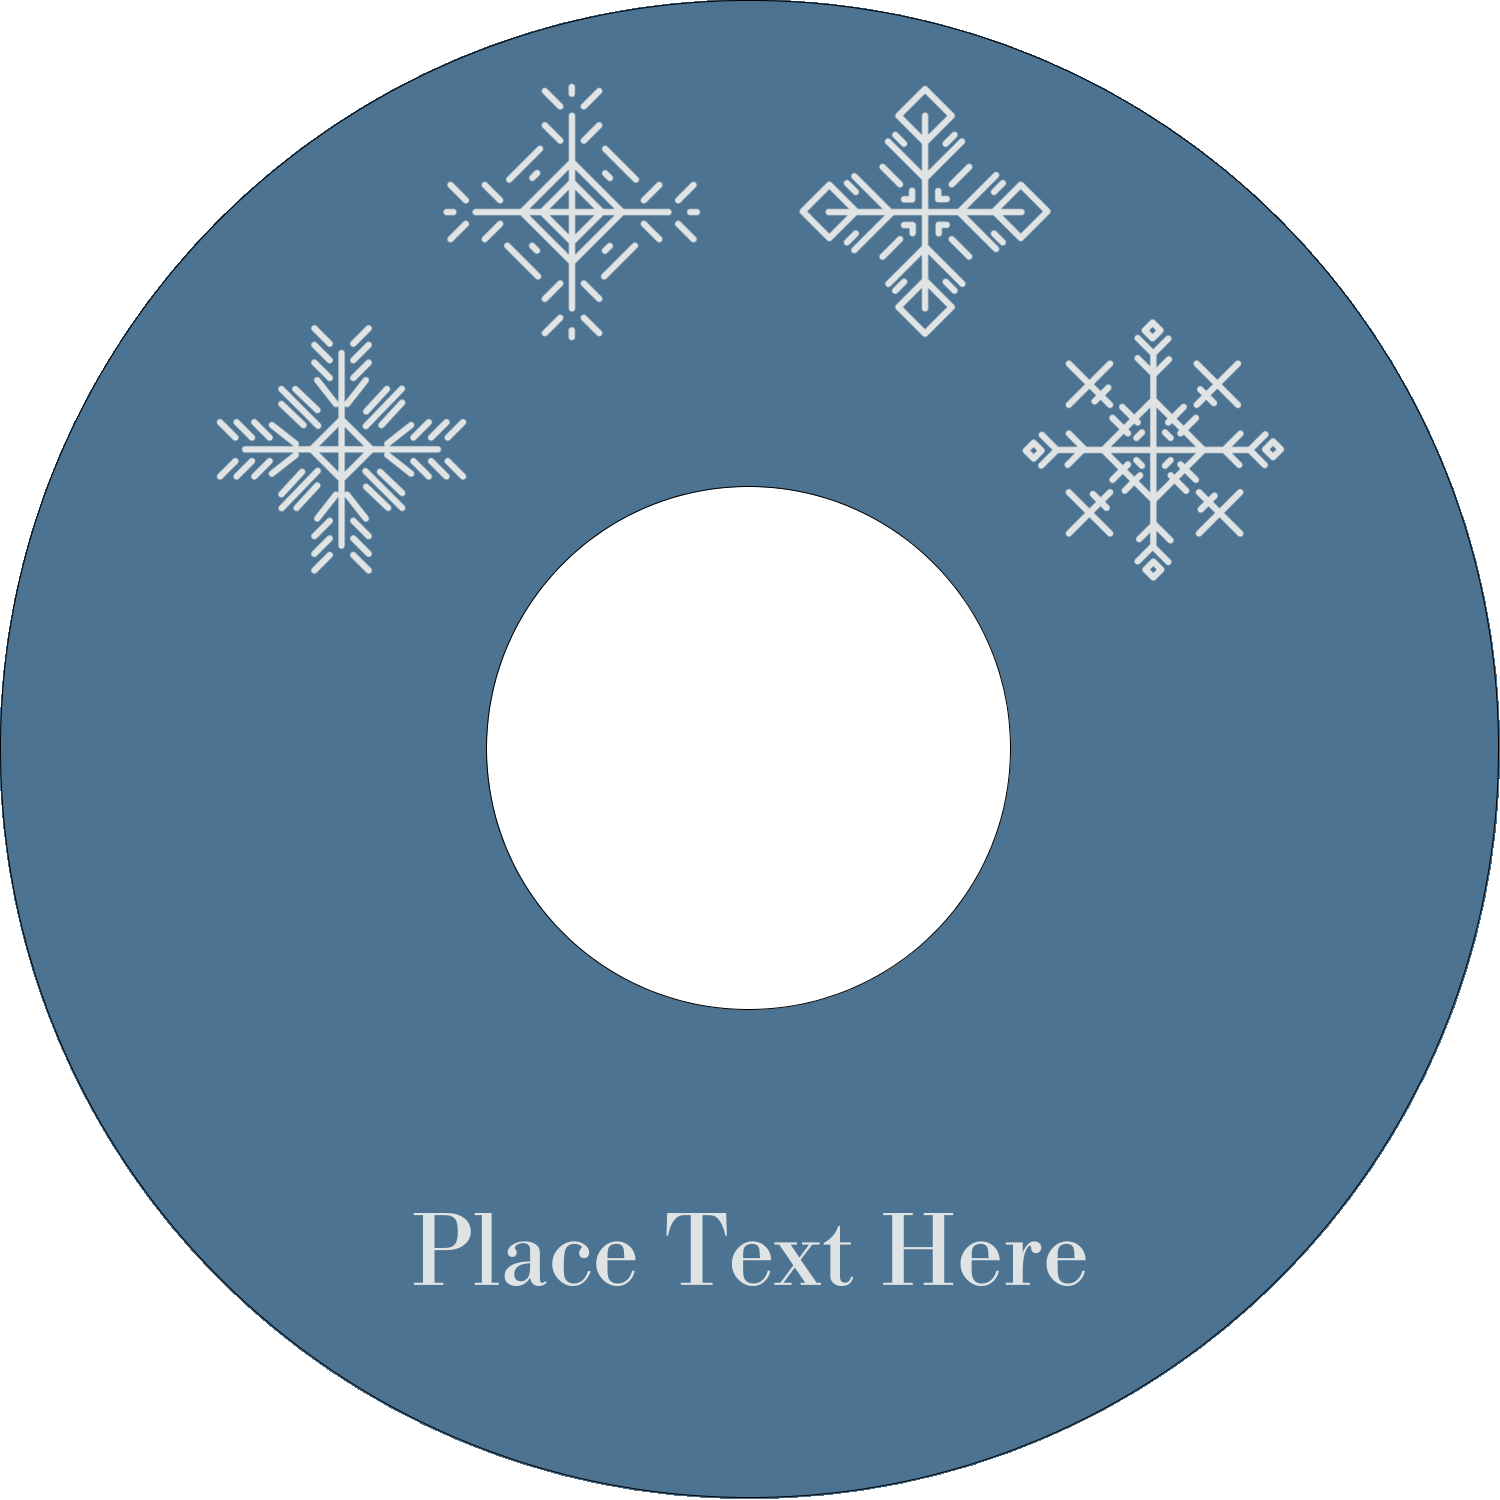 Cd template png. Christmas dvd labels pre